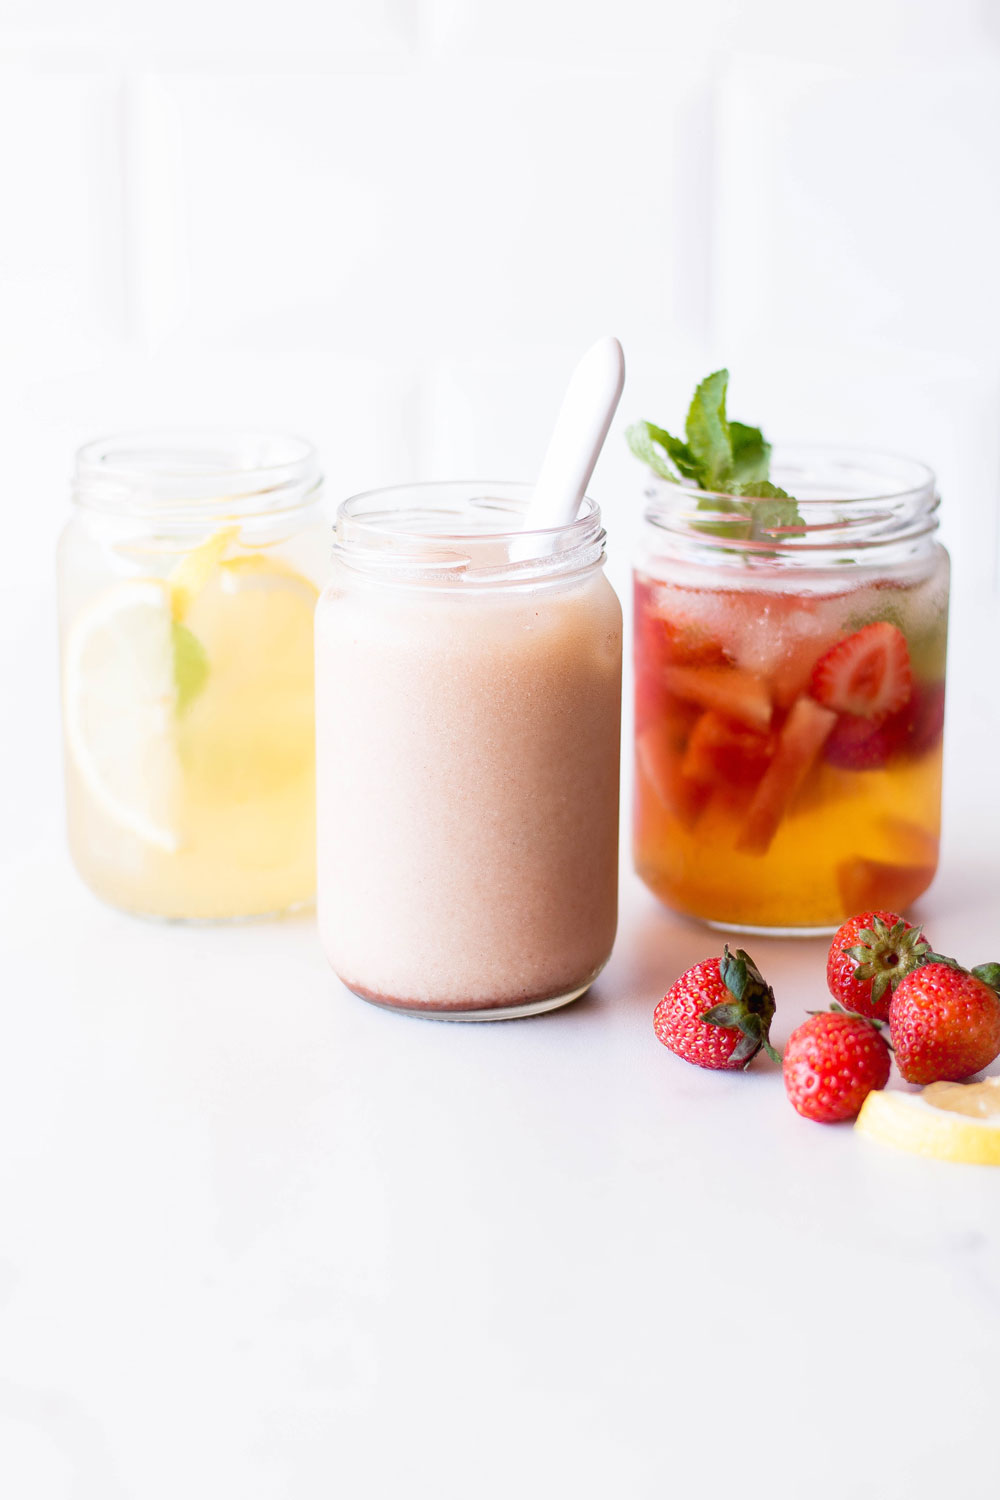 Try one of these refreshing, cold brewed teas to cool off during the hot summer months! Cleanse the body with the lemon-ginger iced tea, increase your daily antioxidant intake with the fruity infusion and get energized with the Thai blend! https://www.spotebi.com/recipes/cold-brewed-summer-teas/